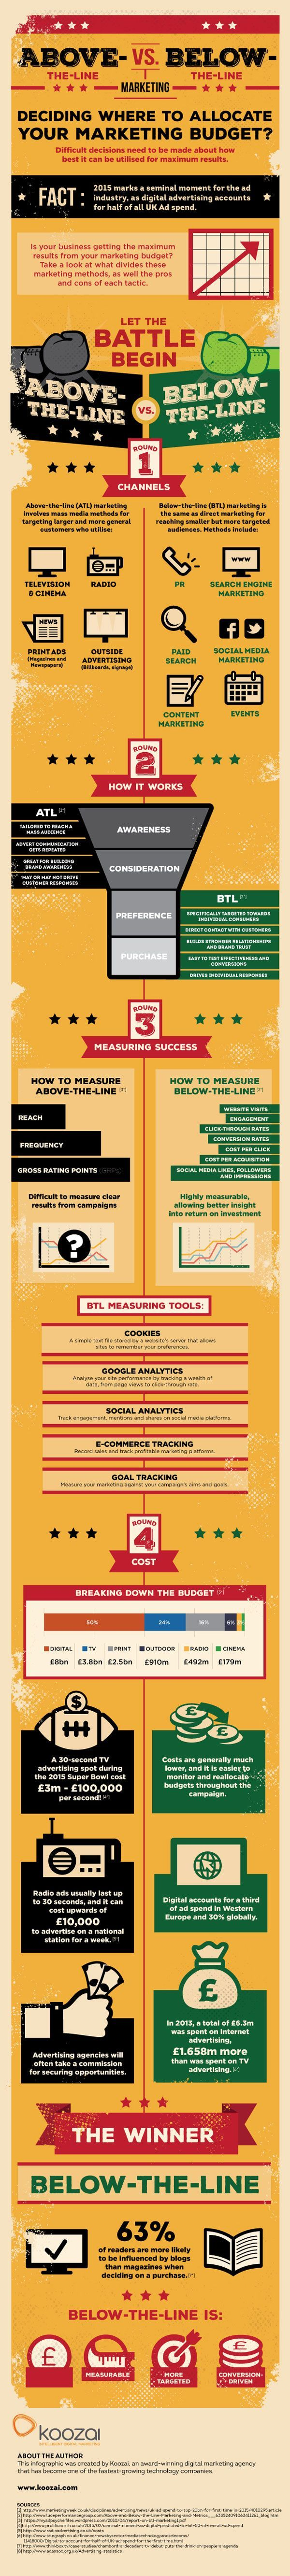 Above-The-Line Vs Below-The-Line Marketing #Infographic